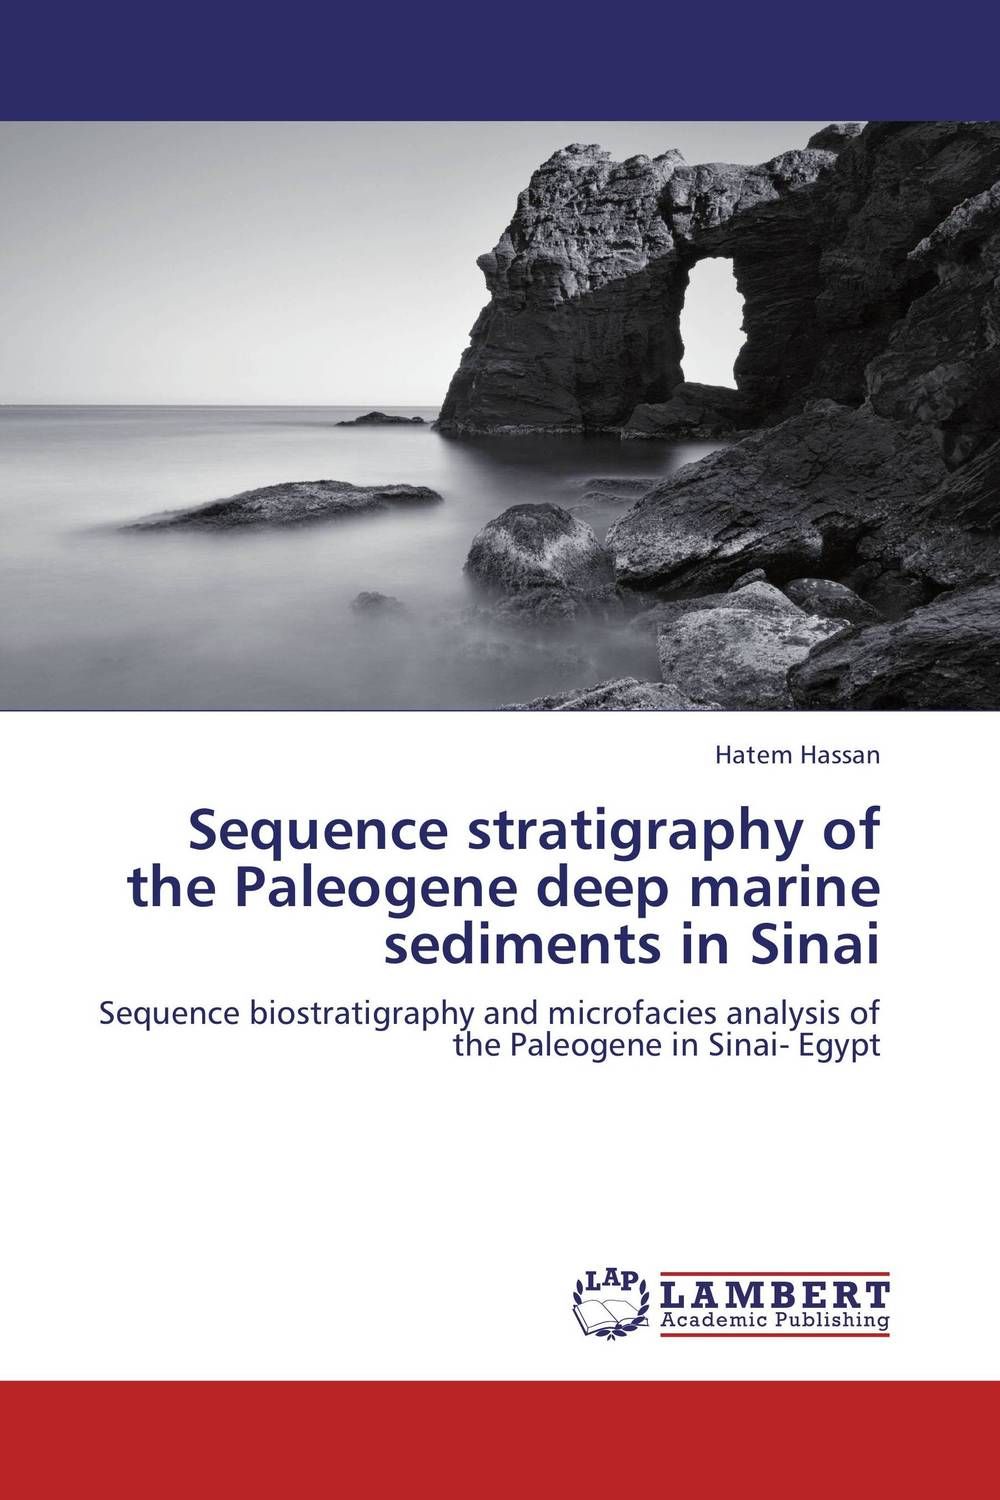 Sequence stratigraphy of the Paleogene deep marine sediments in Sinai